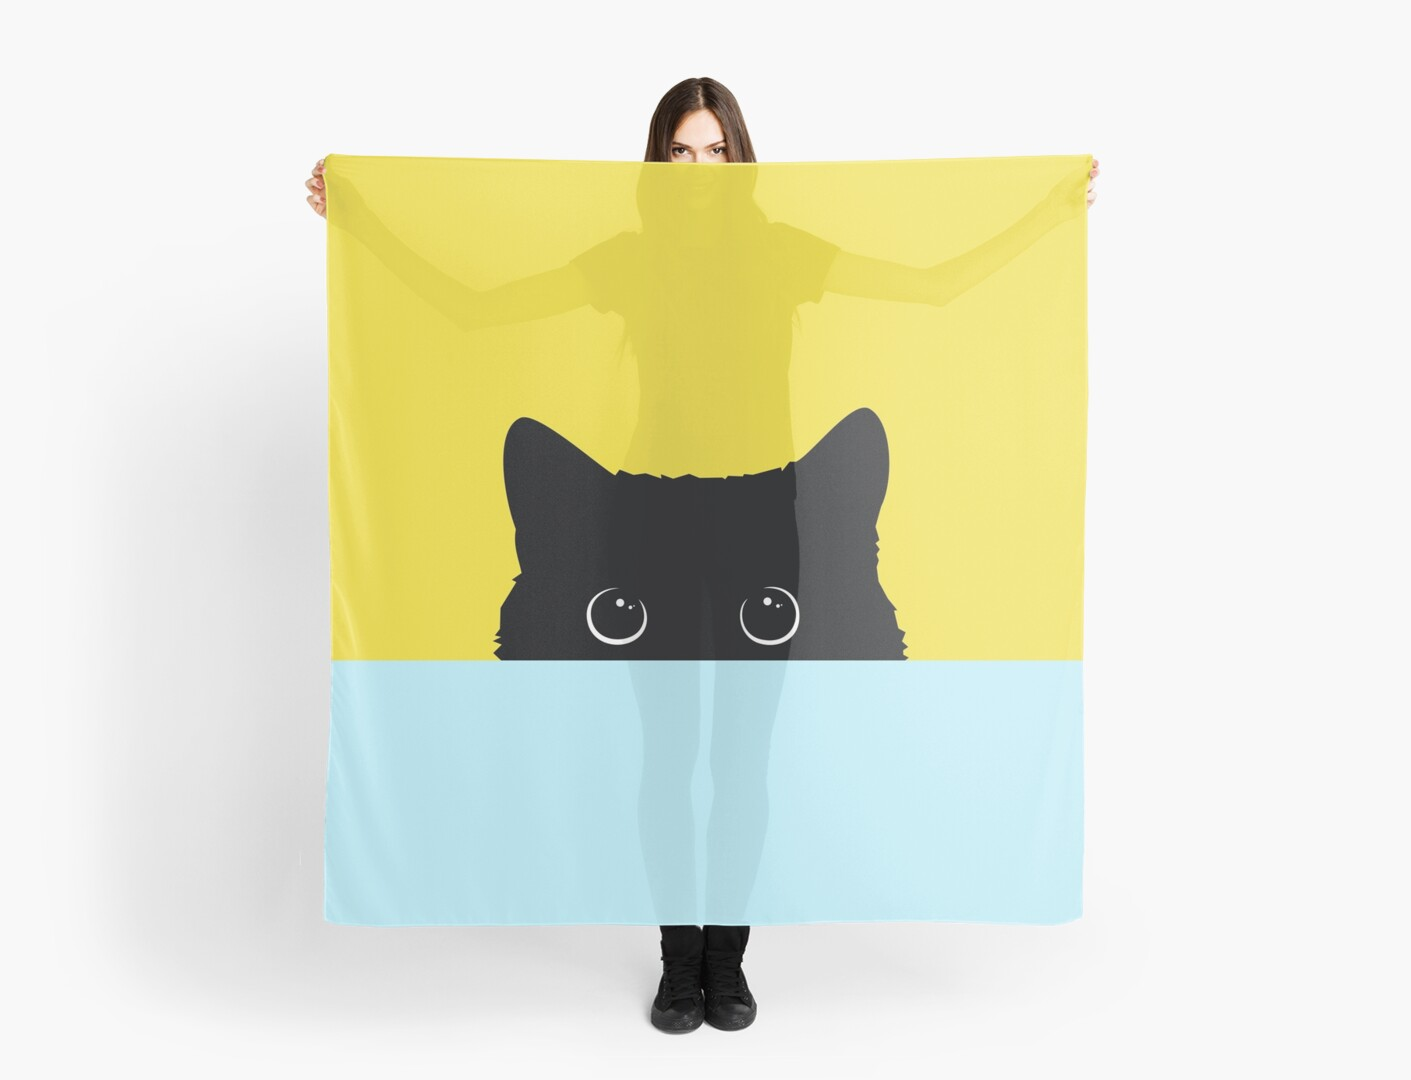 car art cute black cat love 2018 color yellow and sky blue sticker ...